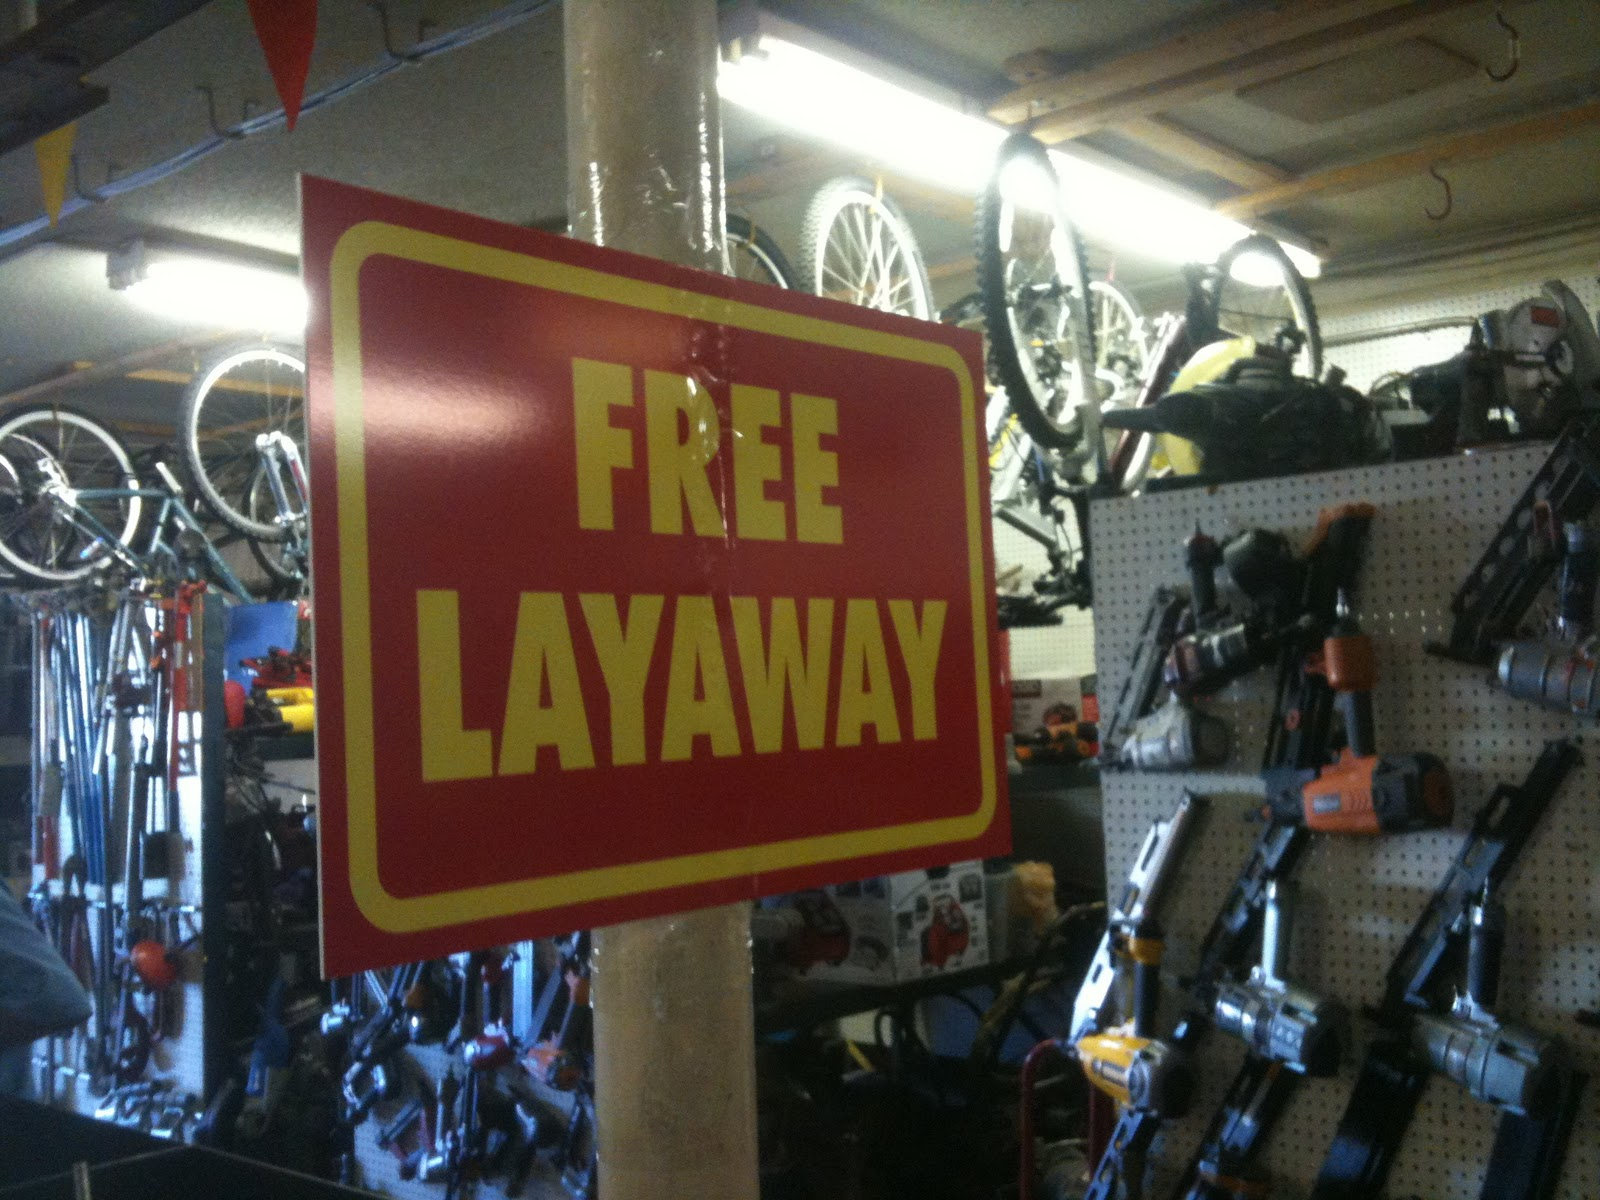 The World Famous Mo-Money Pawn Shop: Free Layaway ahead! - photo#16